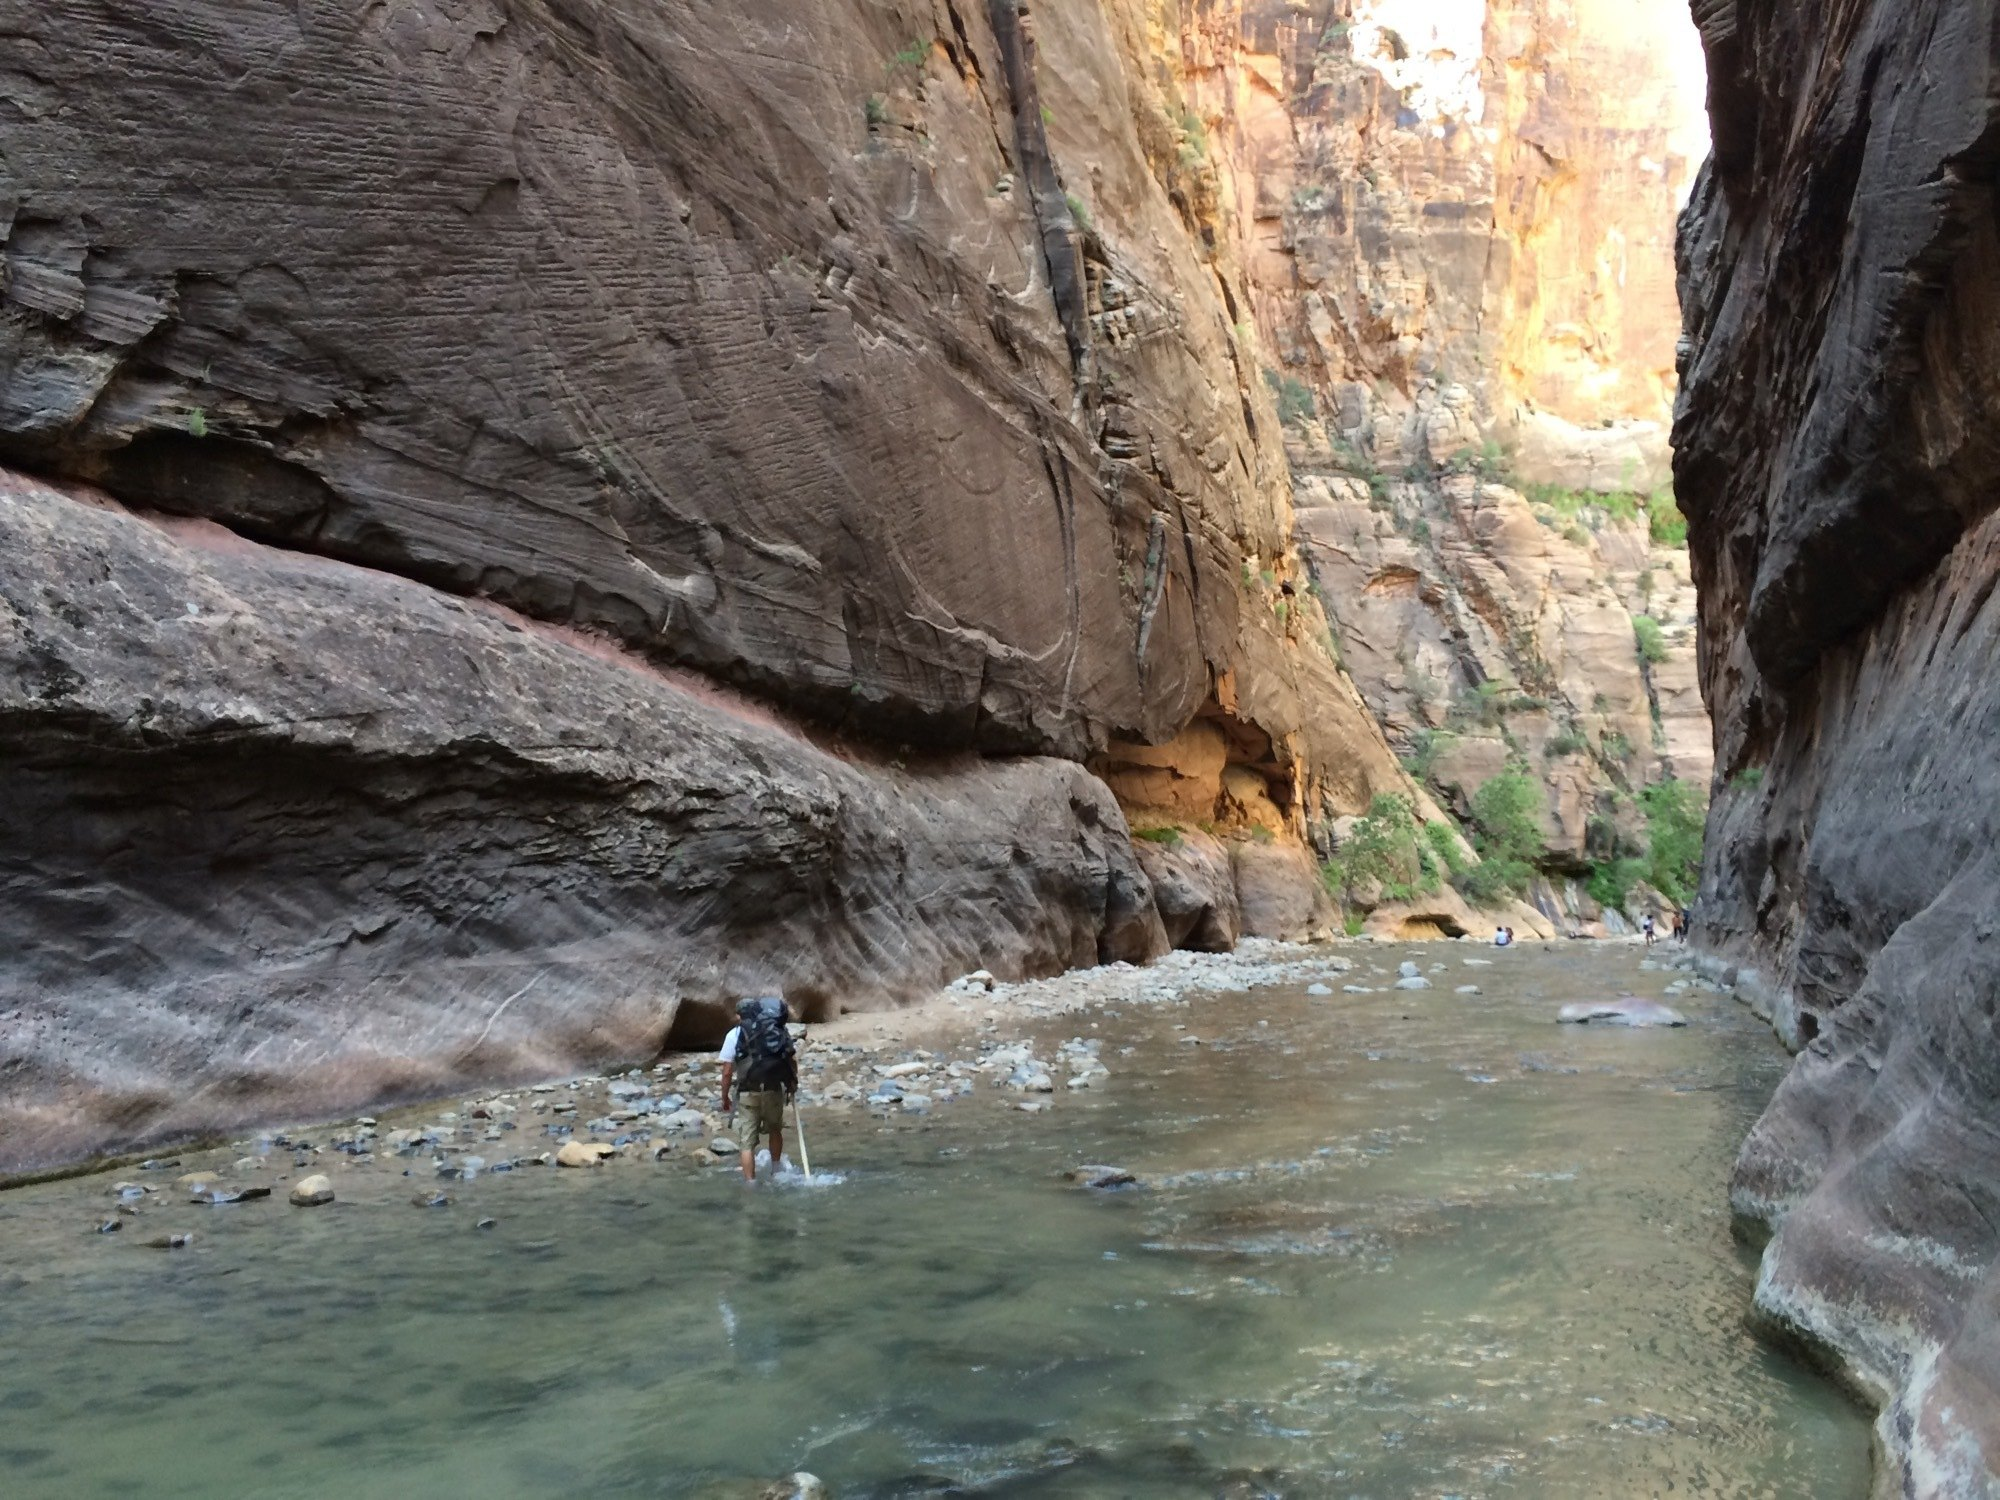 The Zion Narrows // Explore Utah National Parks in this 10-day road trip itinerary w/ the best hikes, activities & camping in Zion, Bryce, Capitol Reef, Arches & Canyonlands.